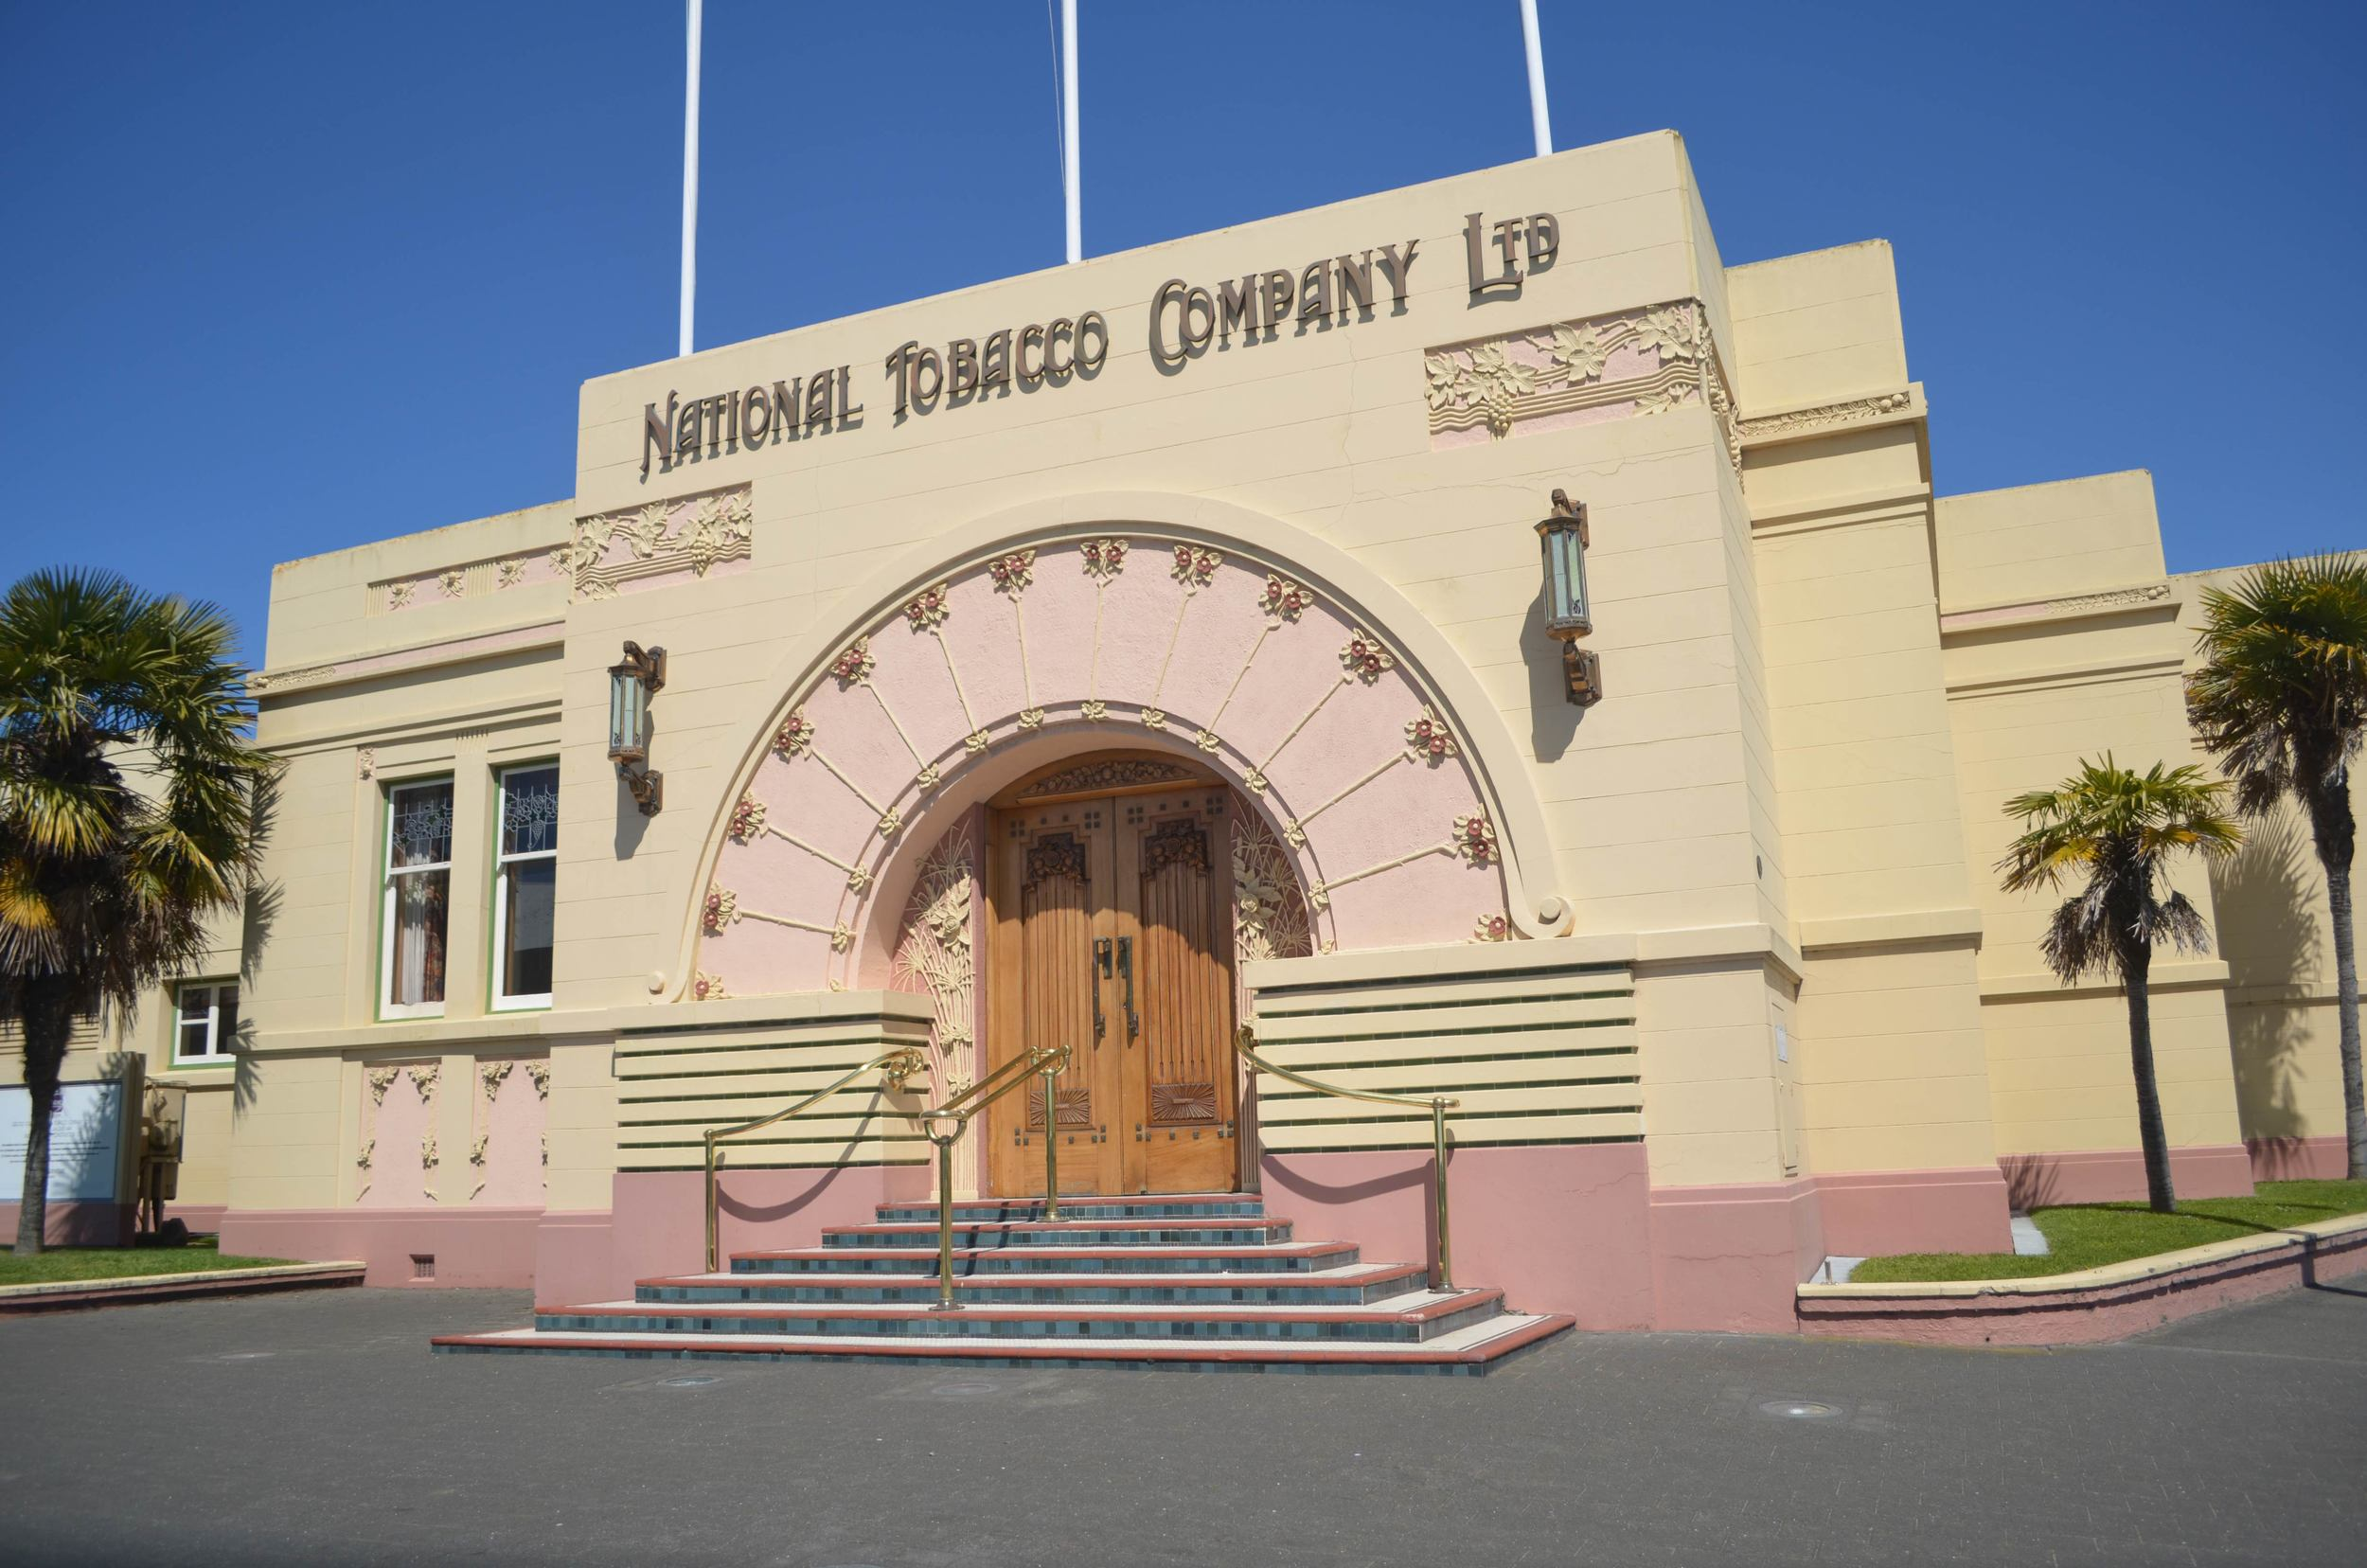 Rebuilt in Art Deco style after the 1931 Earthquake, The National Tobacco Company building is one of the most photographed buildings in New Zealand.